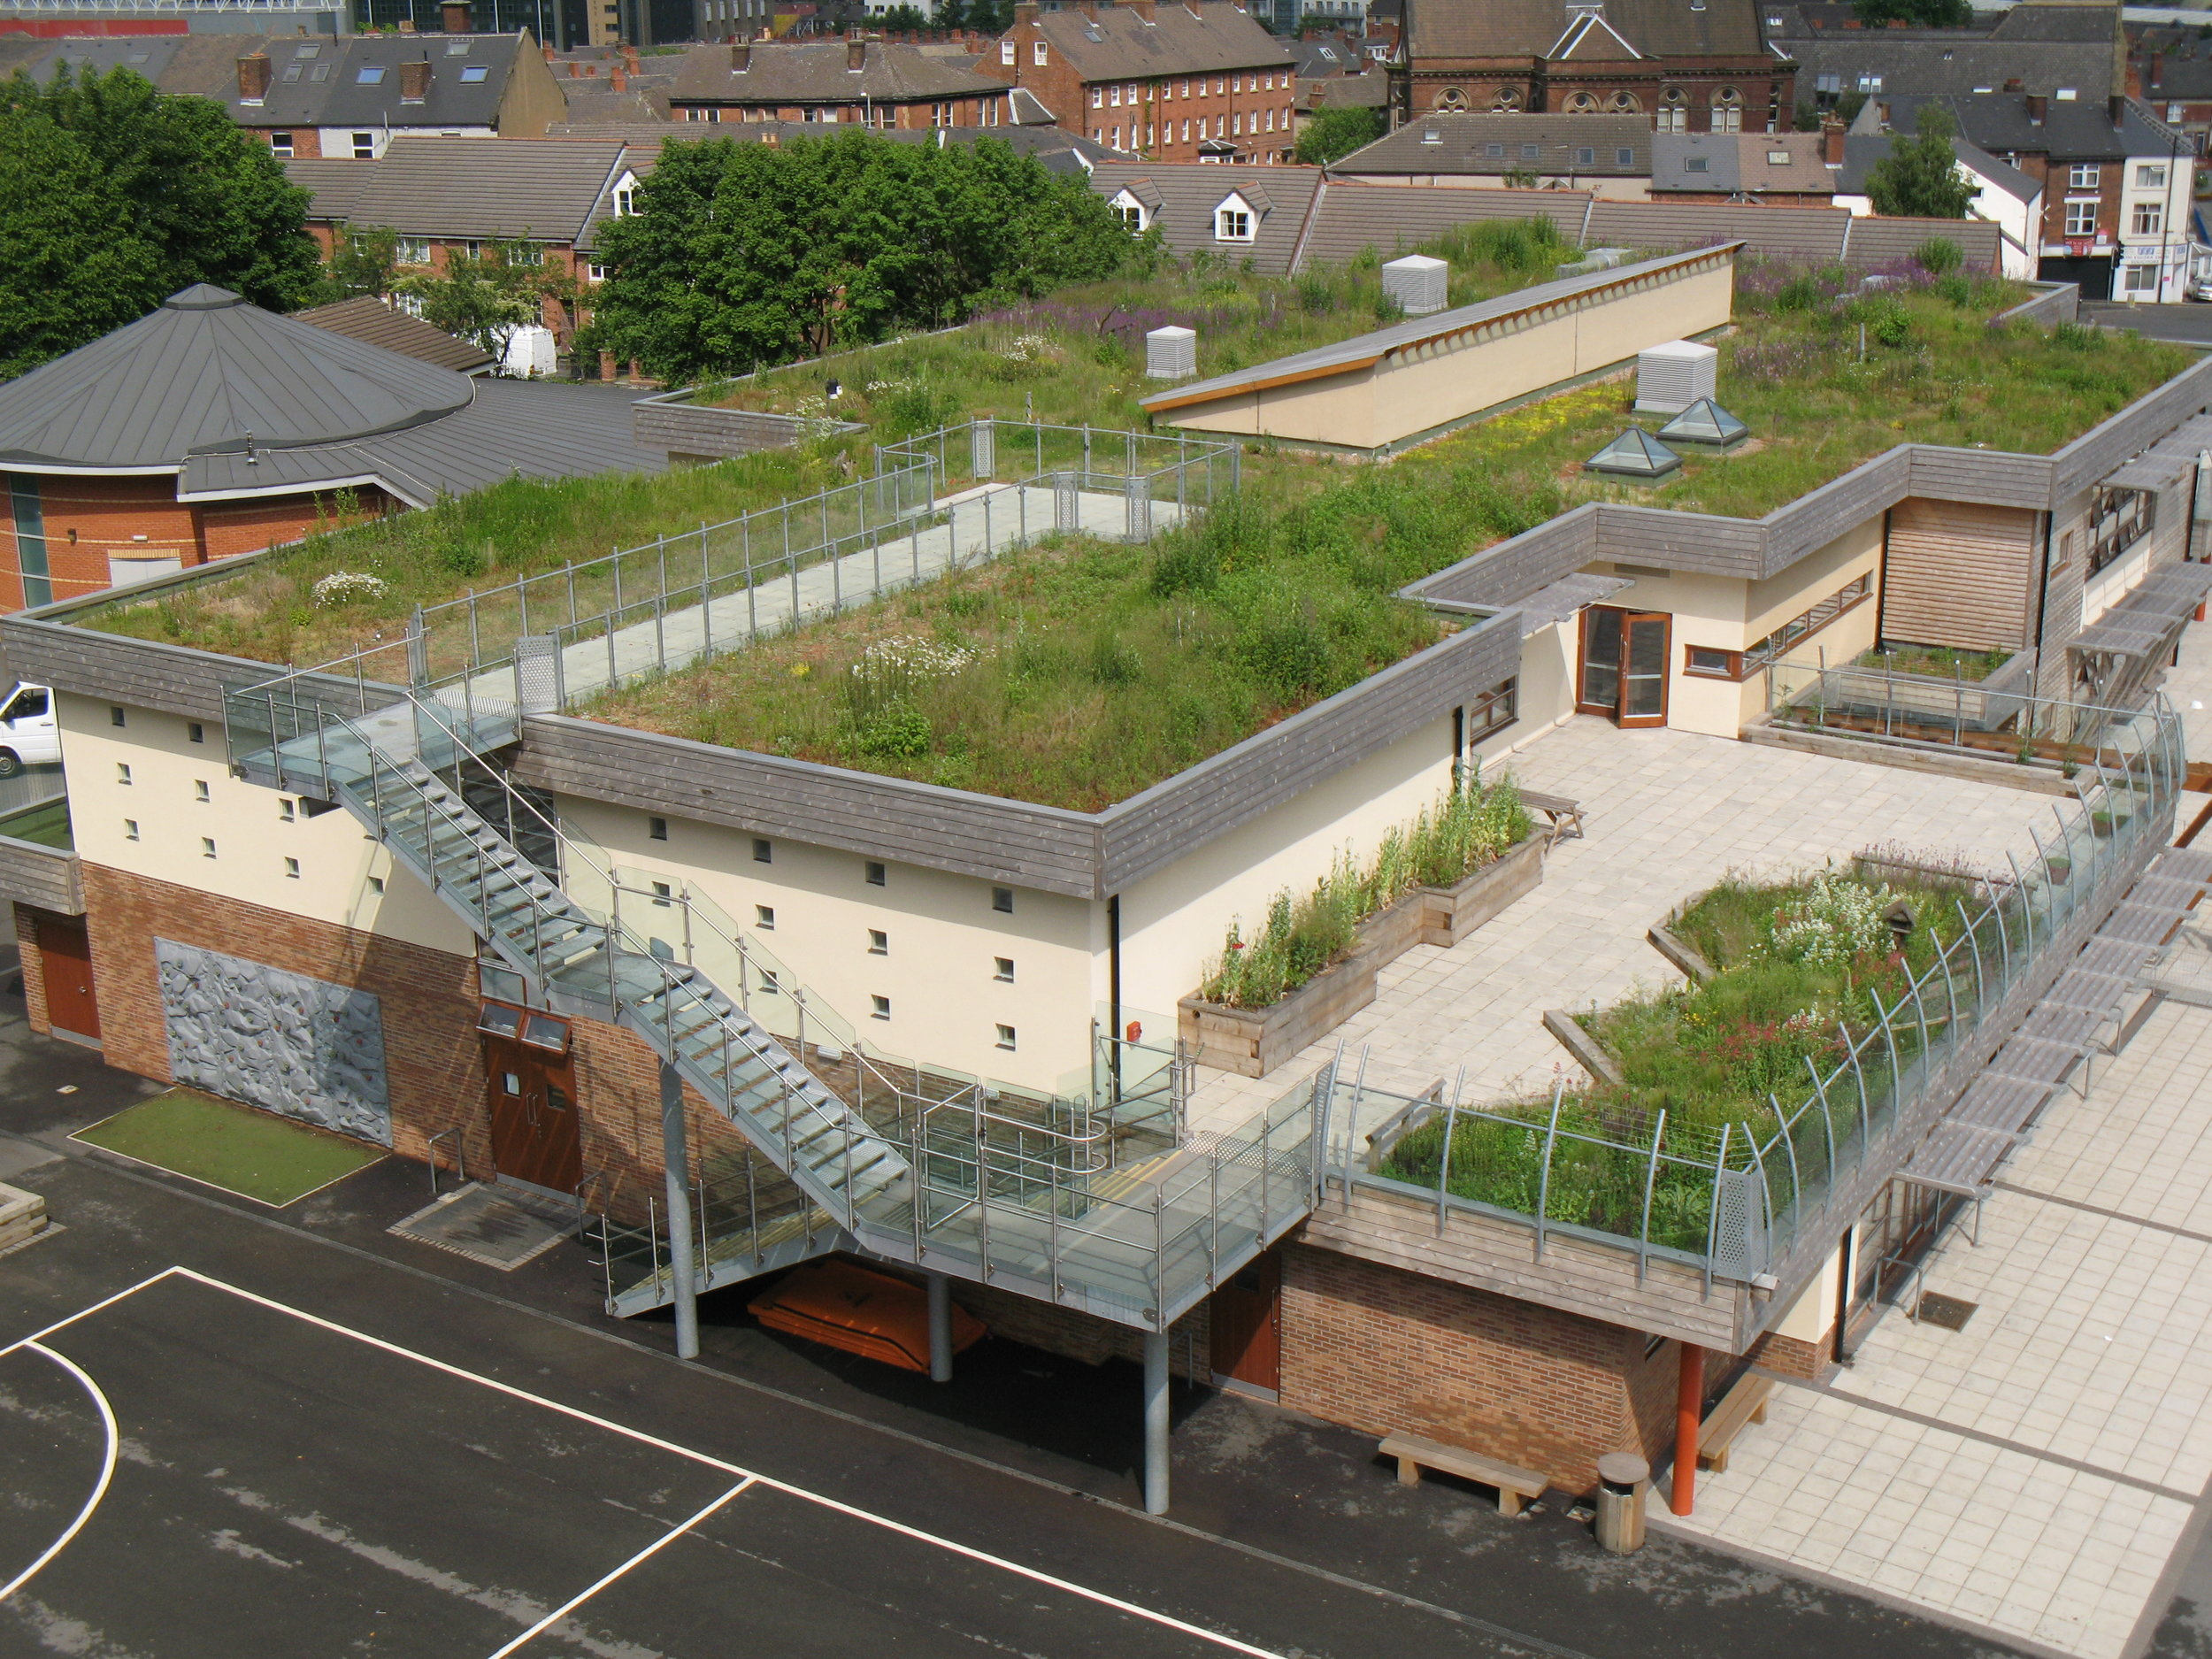 Green Roof of a School